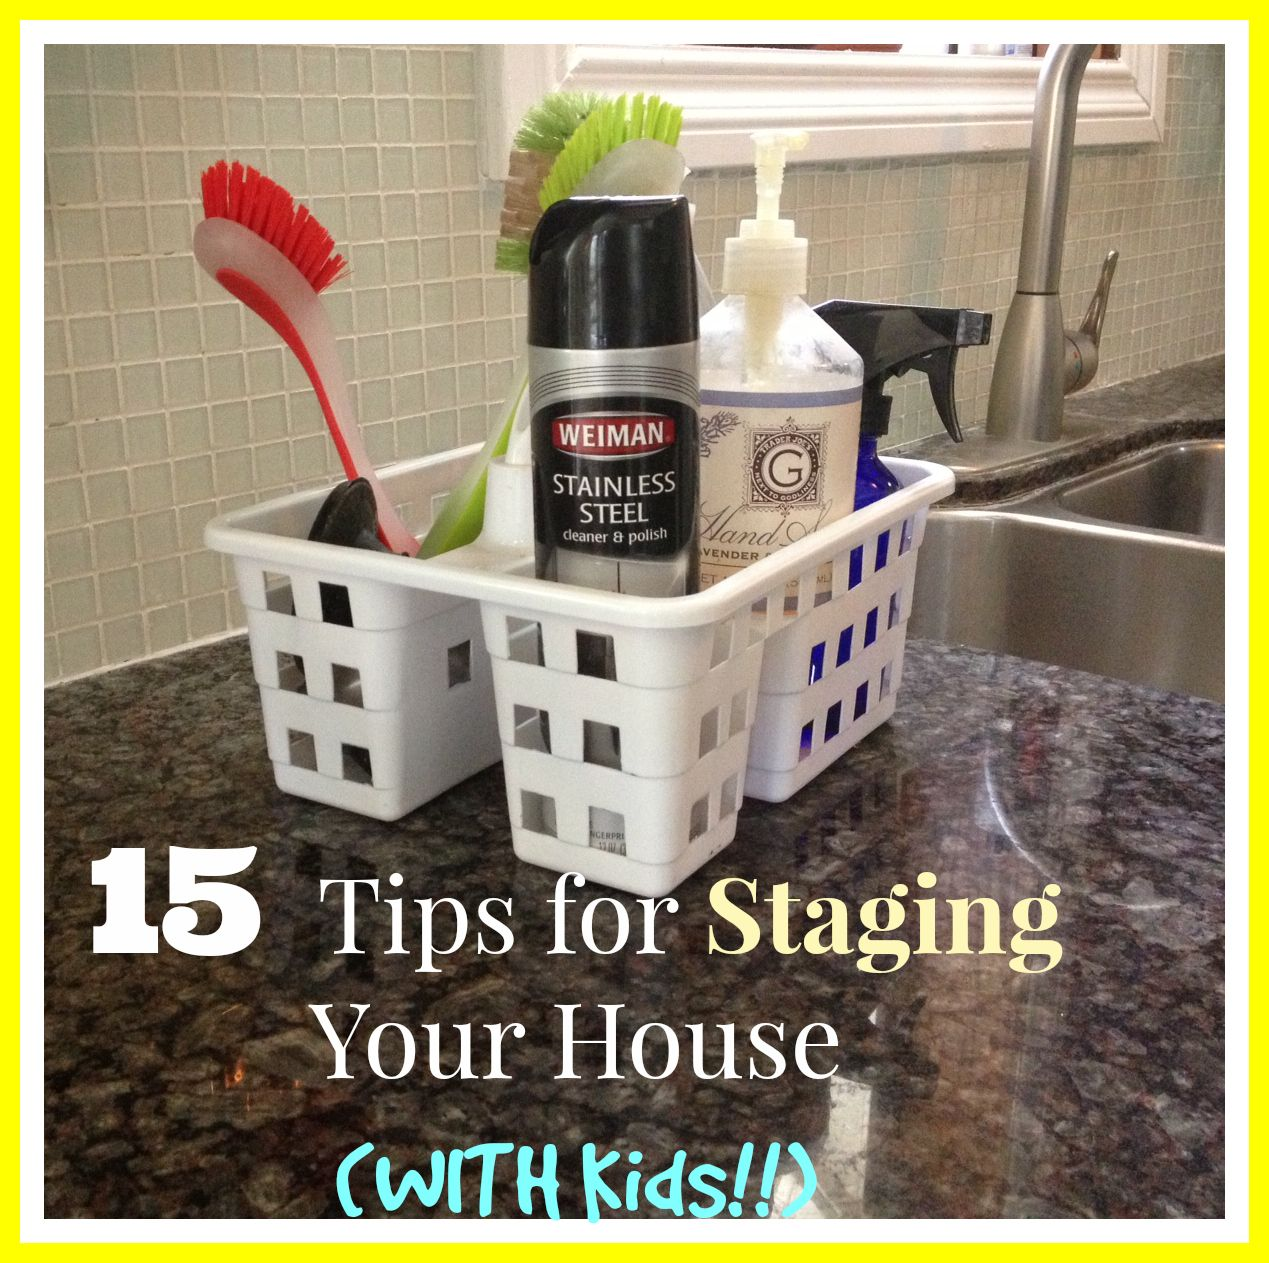 How To Stage A House Prior To Selling: Staging House With Kids